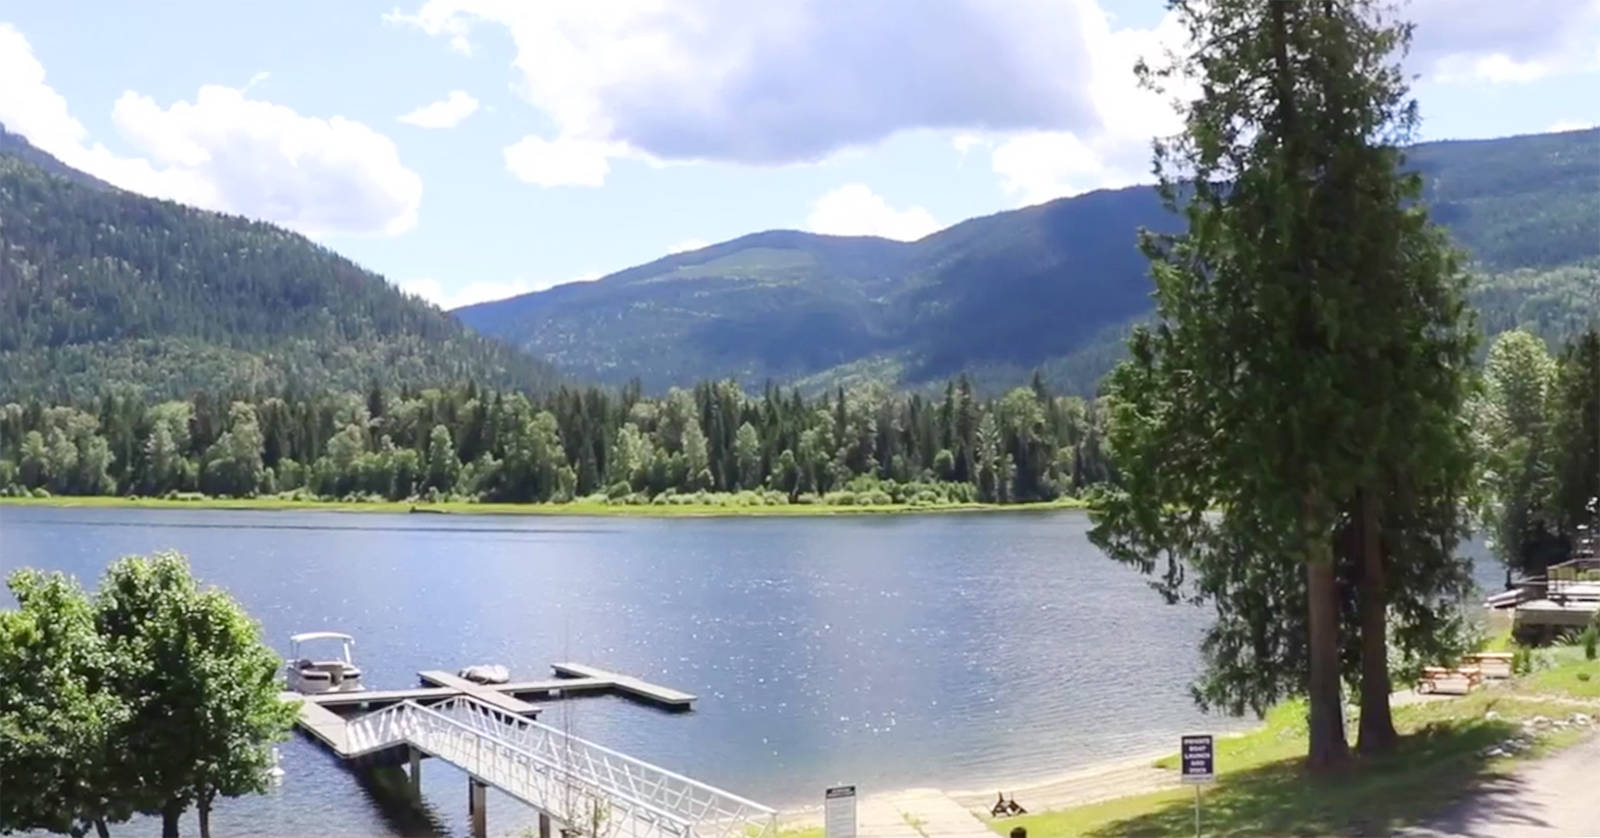 Located less than an hour east of Vernon, Sugar Lake is a year-round vacation destination ideal for both long-weekends and extended escapes.